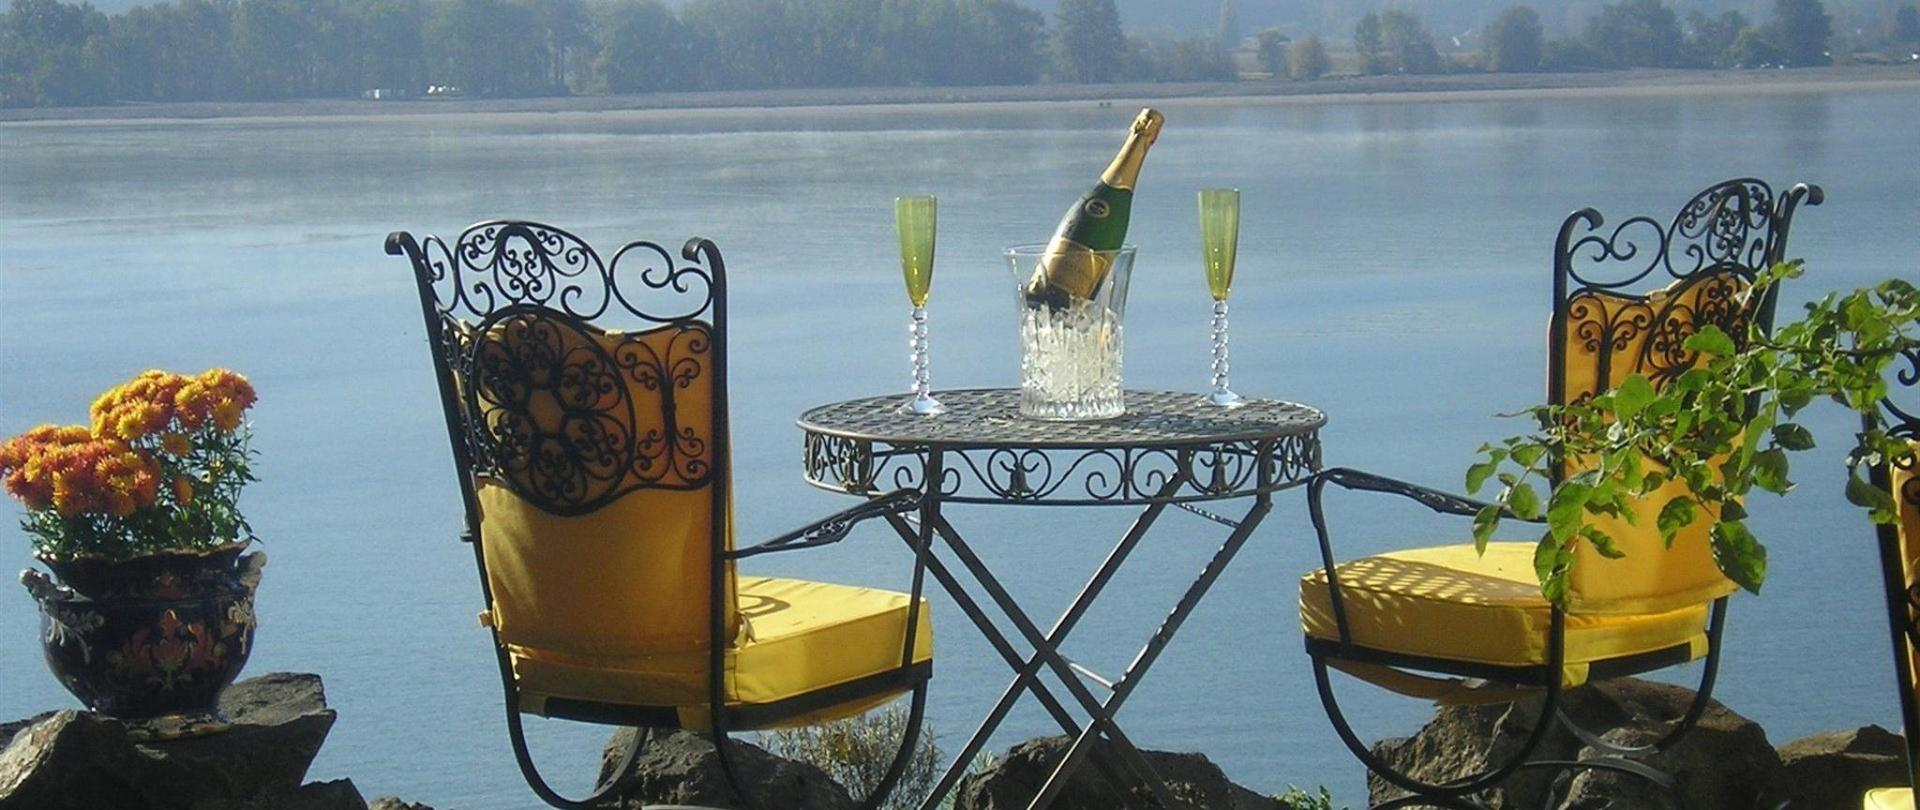 champagne-patio.jpg